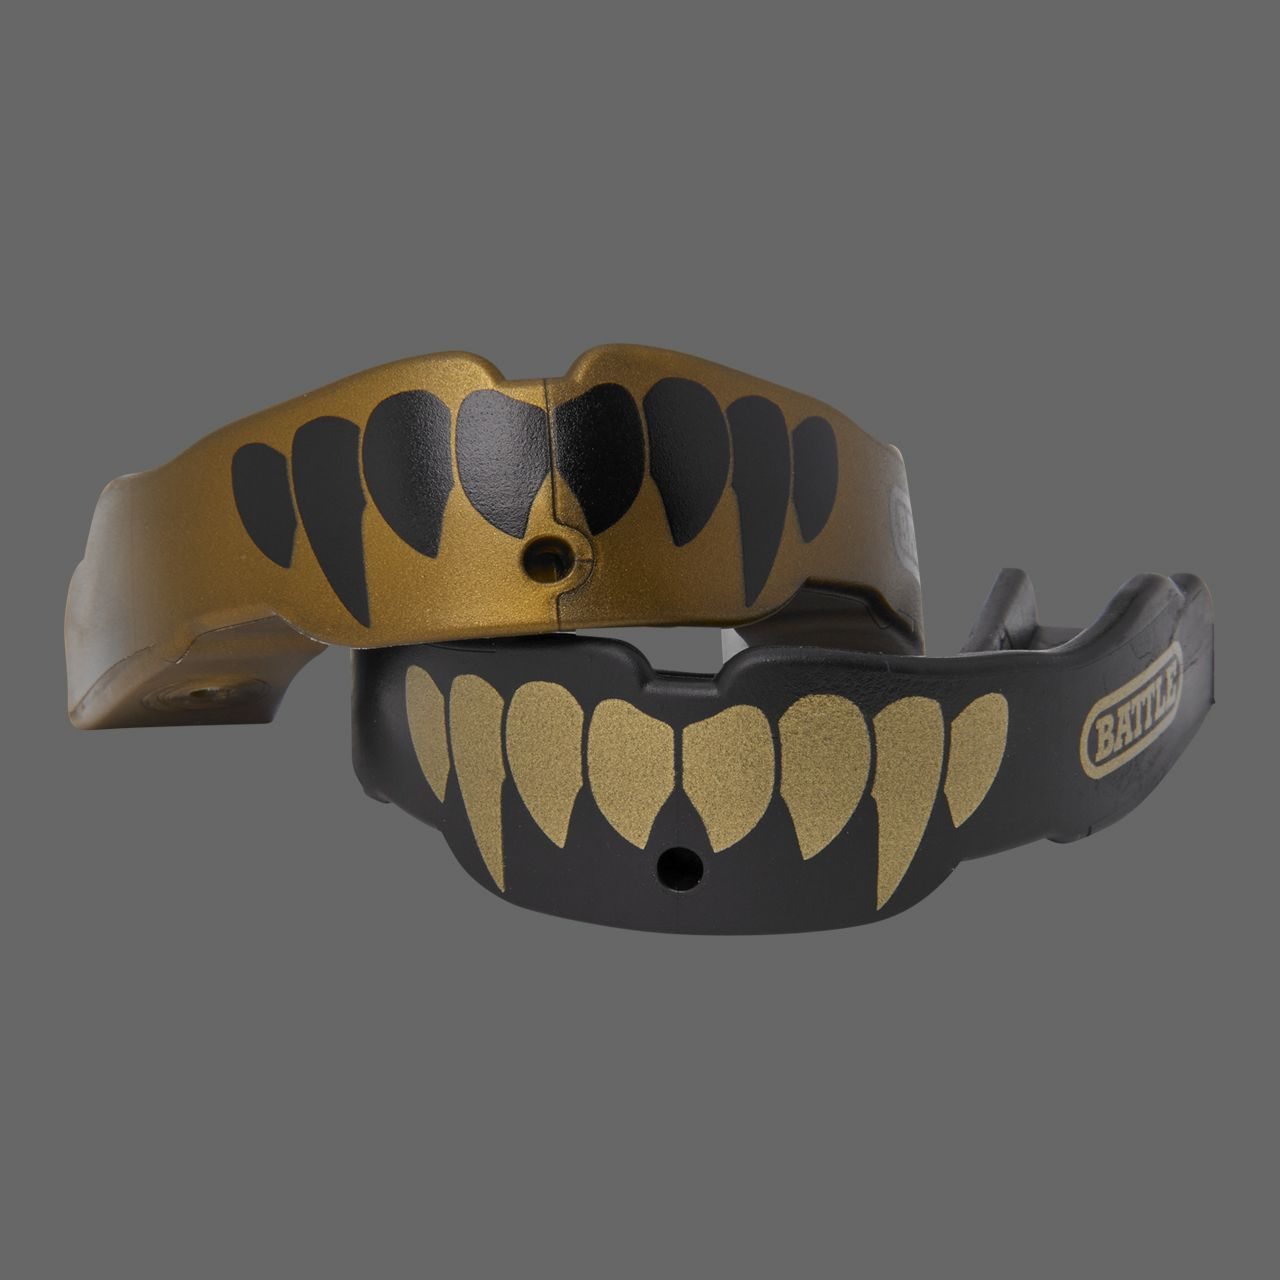 Fangs football mouthguard 2pack mouth guard black